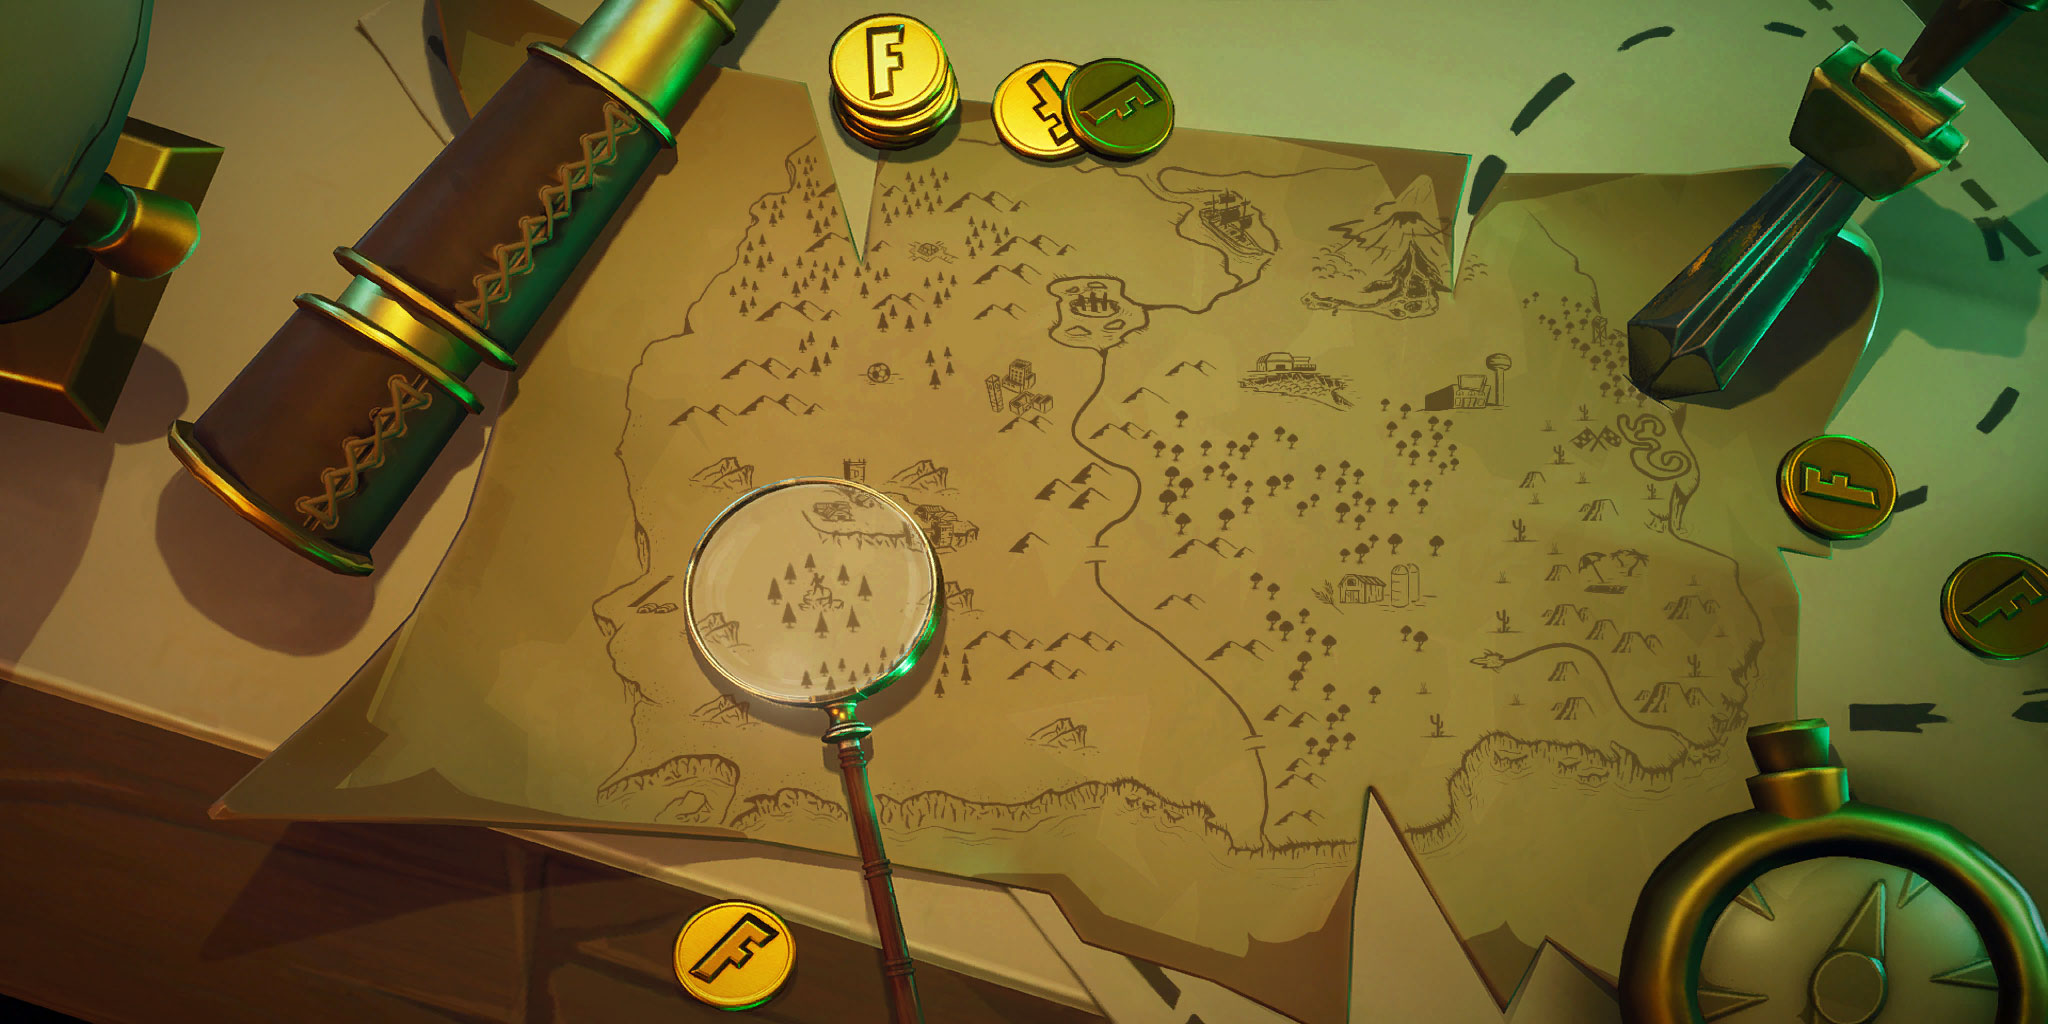 Fortnite: Search Where the Knife Points on the Treasure Map